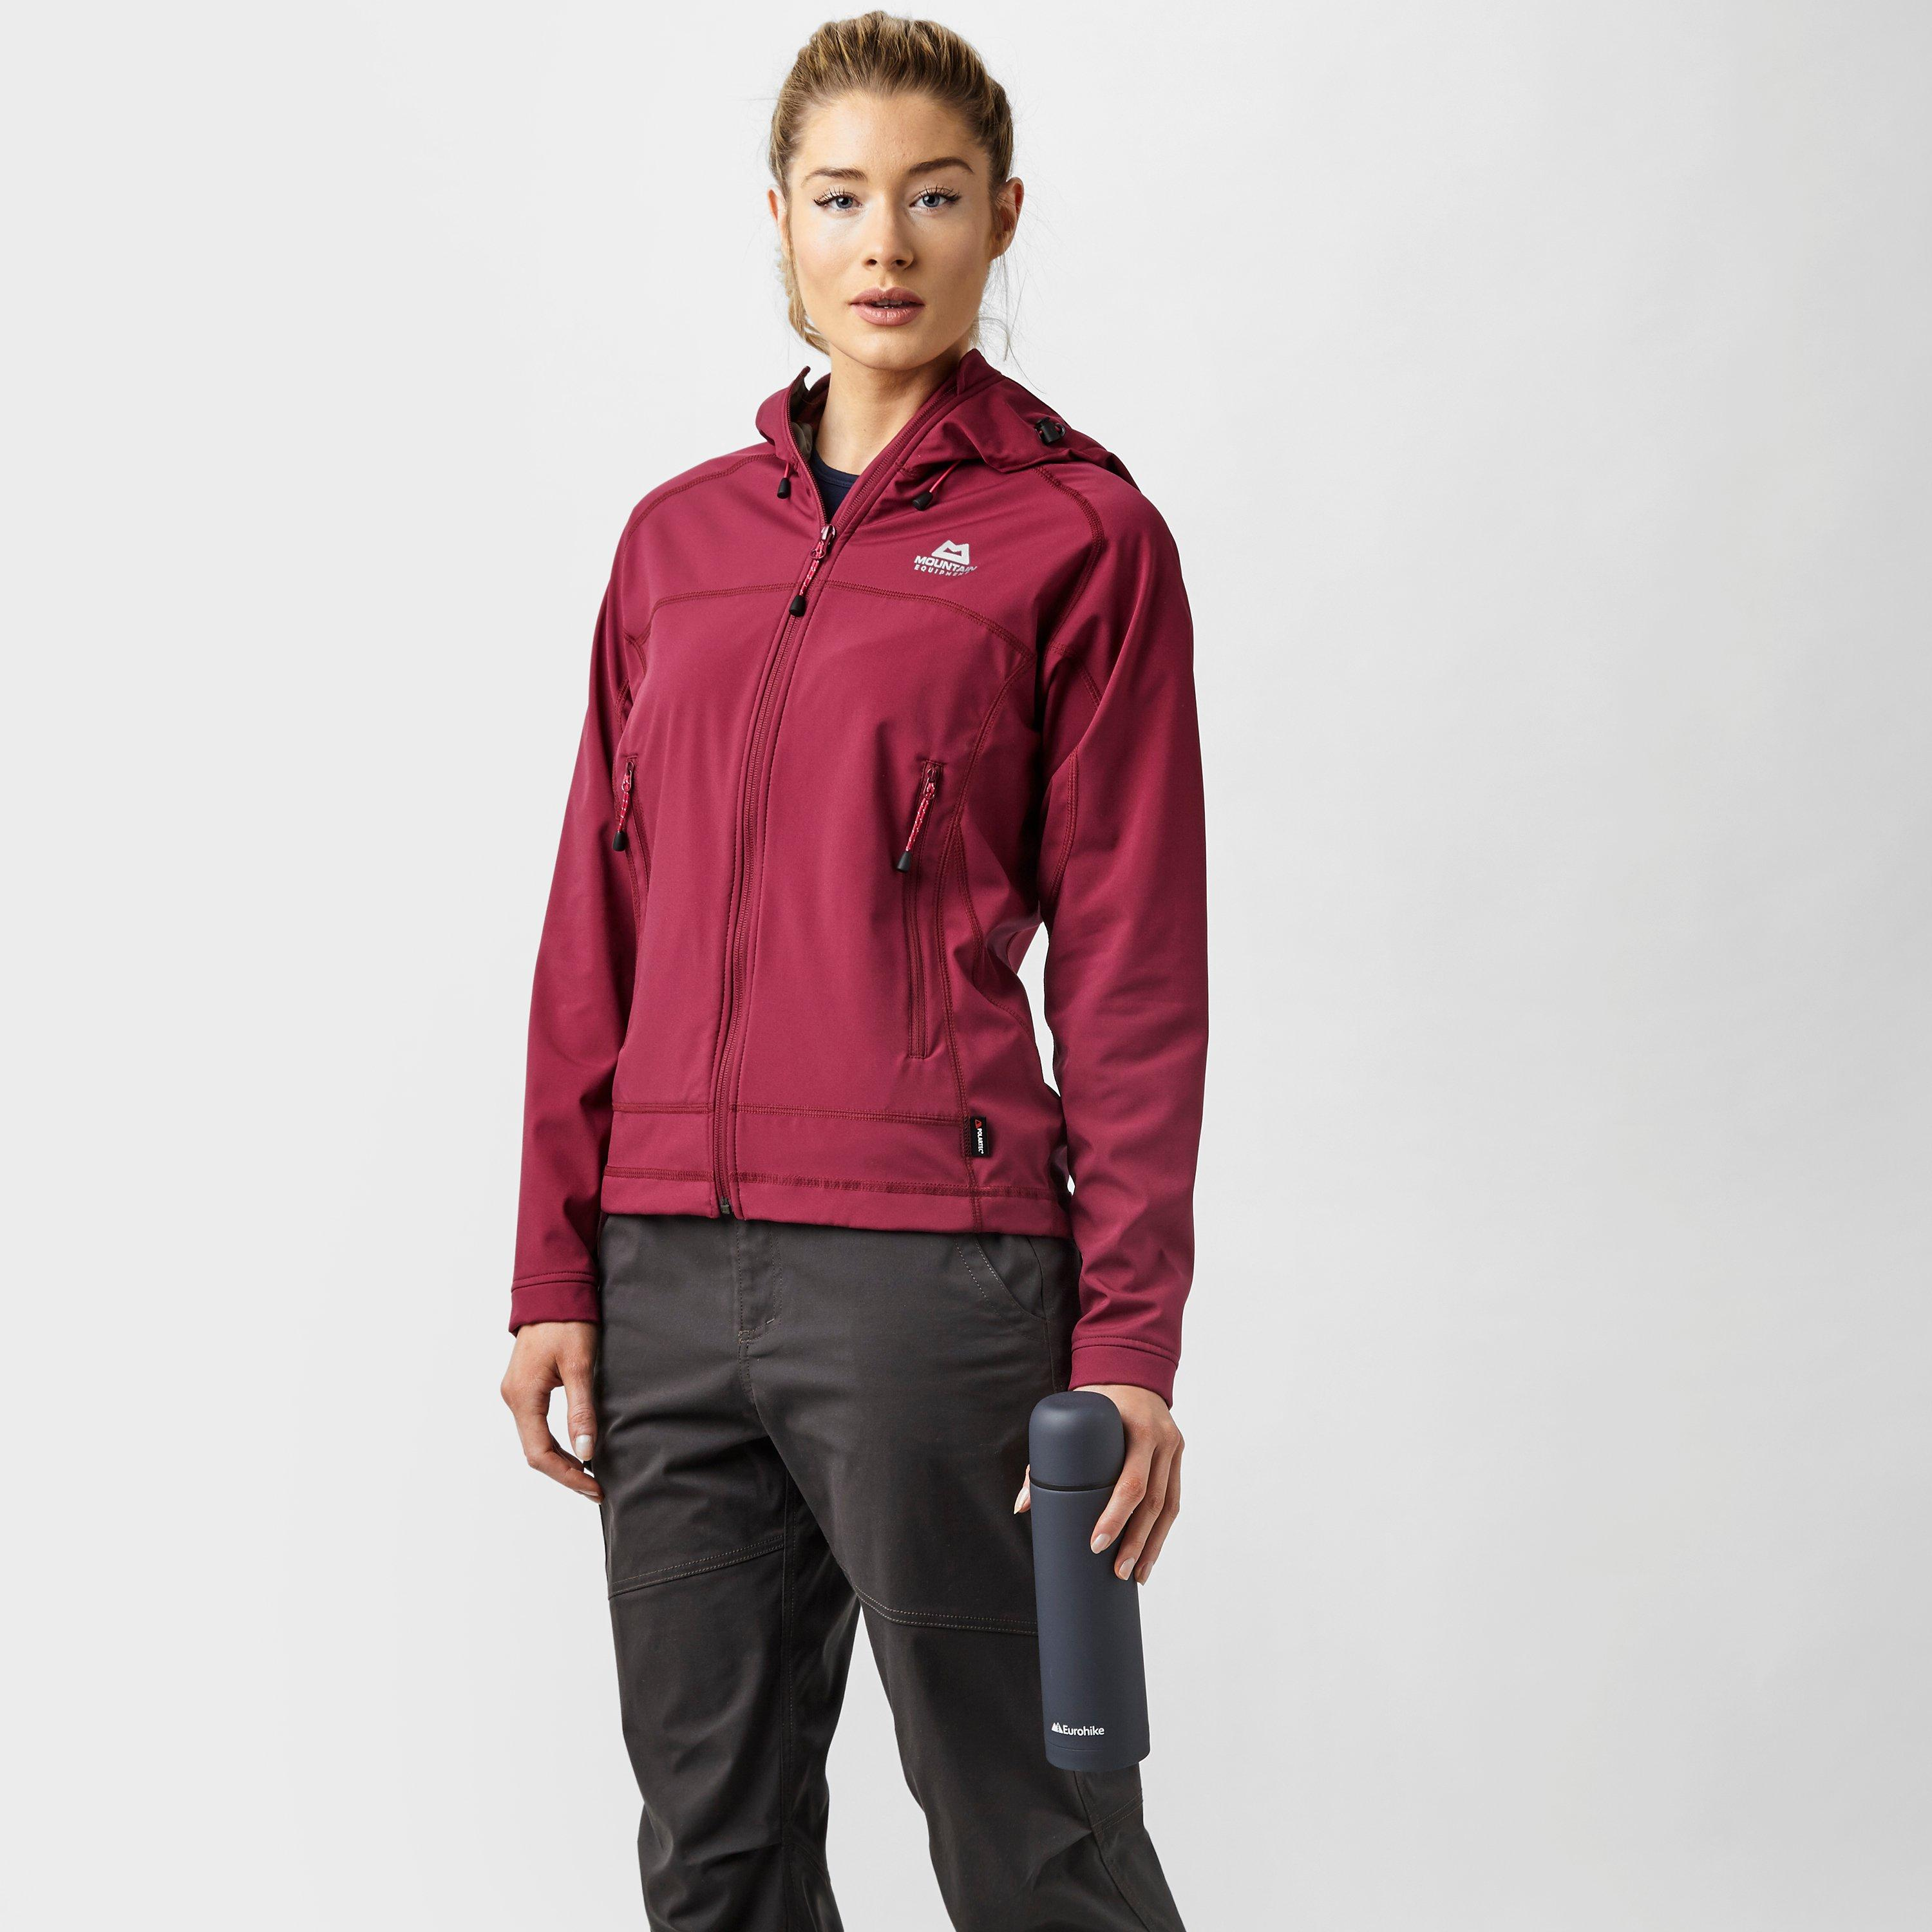 Mountain Equipment Mountain Equipment Womens Astron Softshell Jacket - Pink, Pink